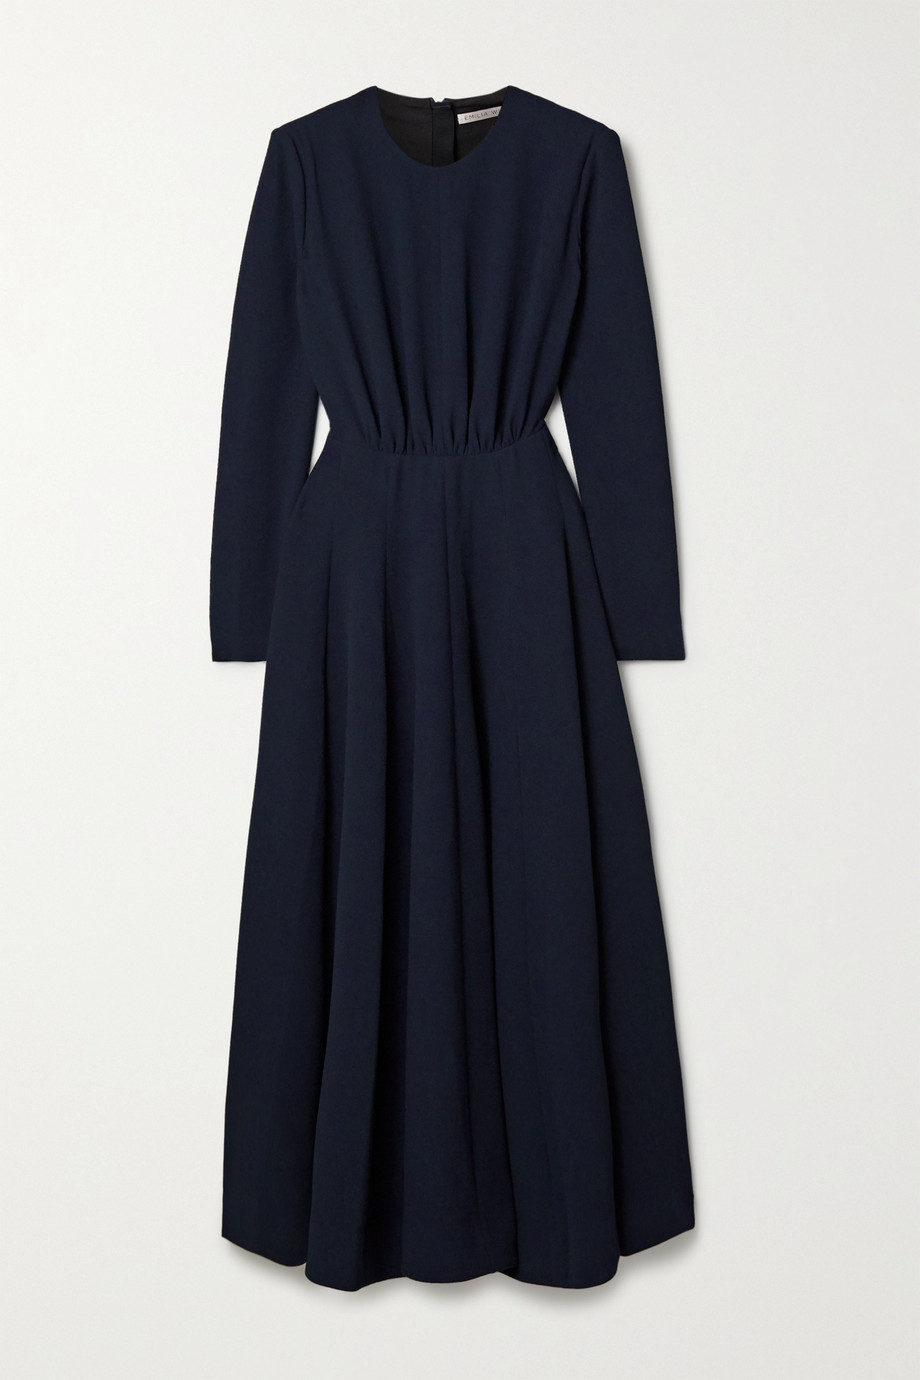 Emilia Wickstead Jorgie ruched cloqué midi dress